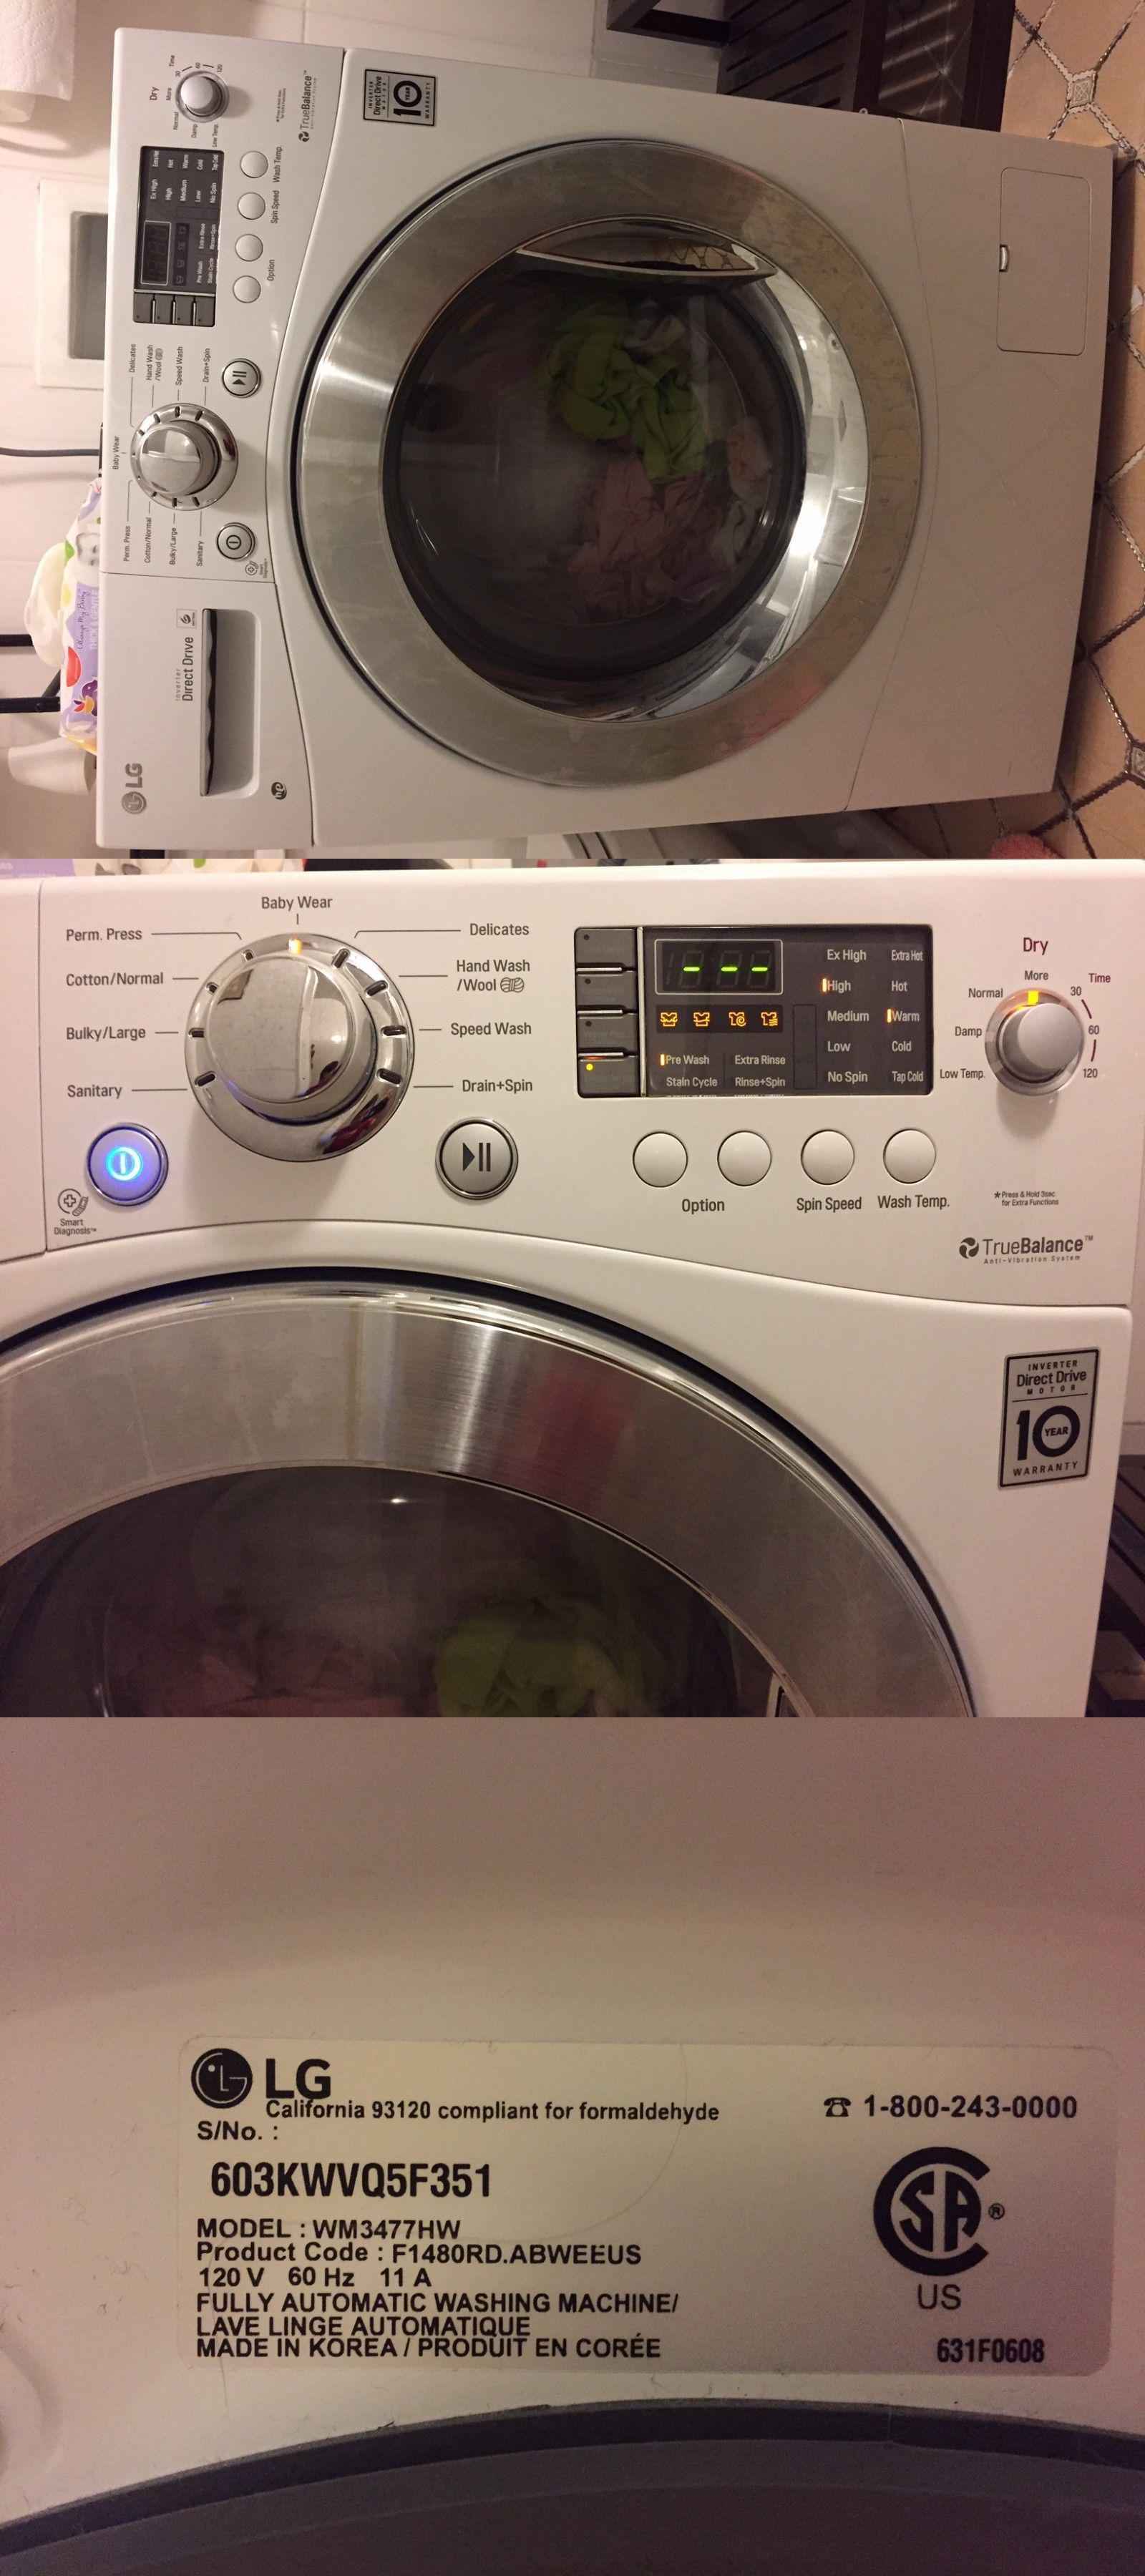 Washer And Dryer Sets 71257 Lg Washer Dryer All In One Combo Unit Buy It Now Only 950 On Ebay Lg Washer And Dryer Washer Dryer Combo Washer And Dryer